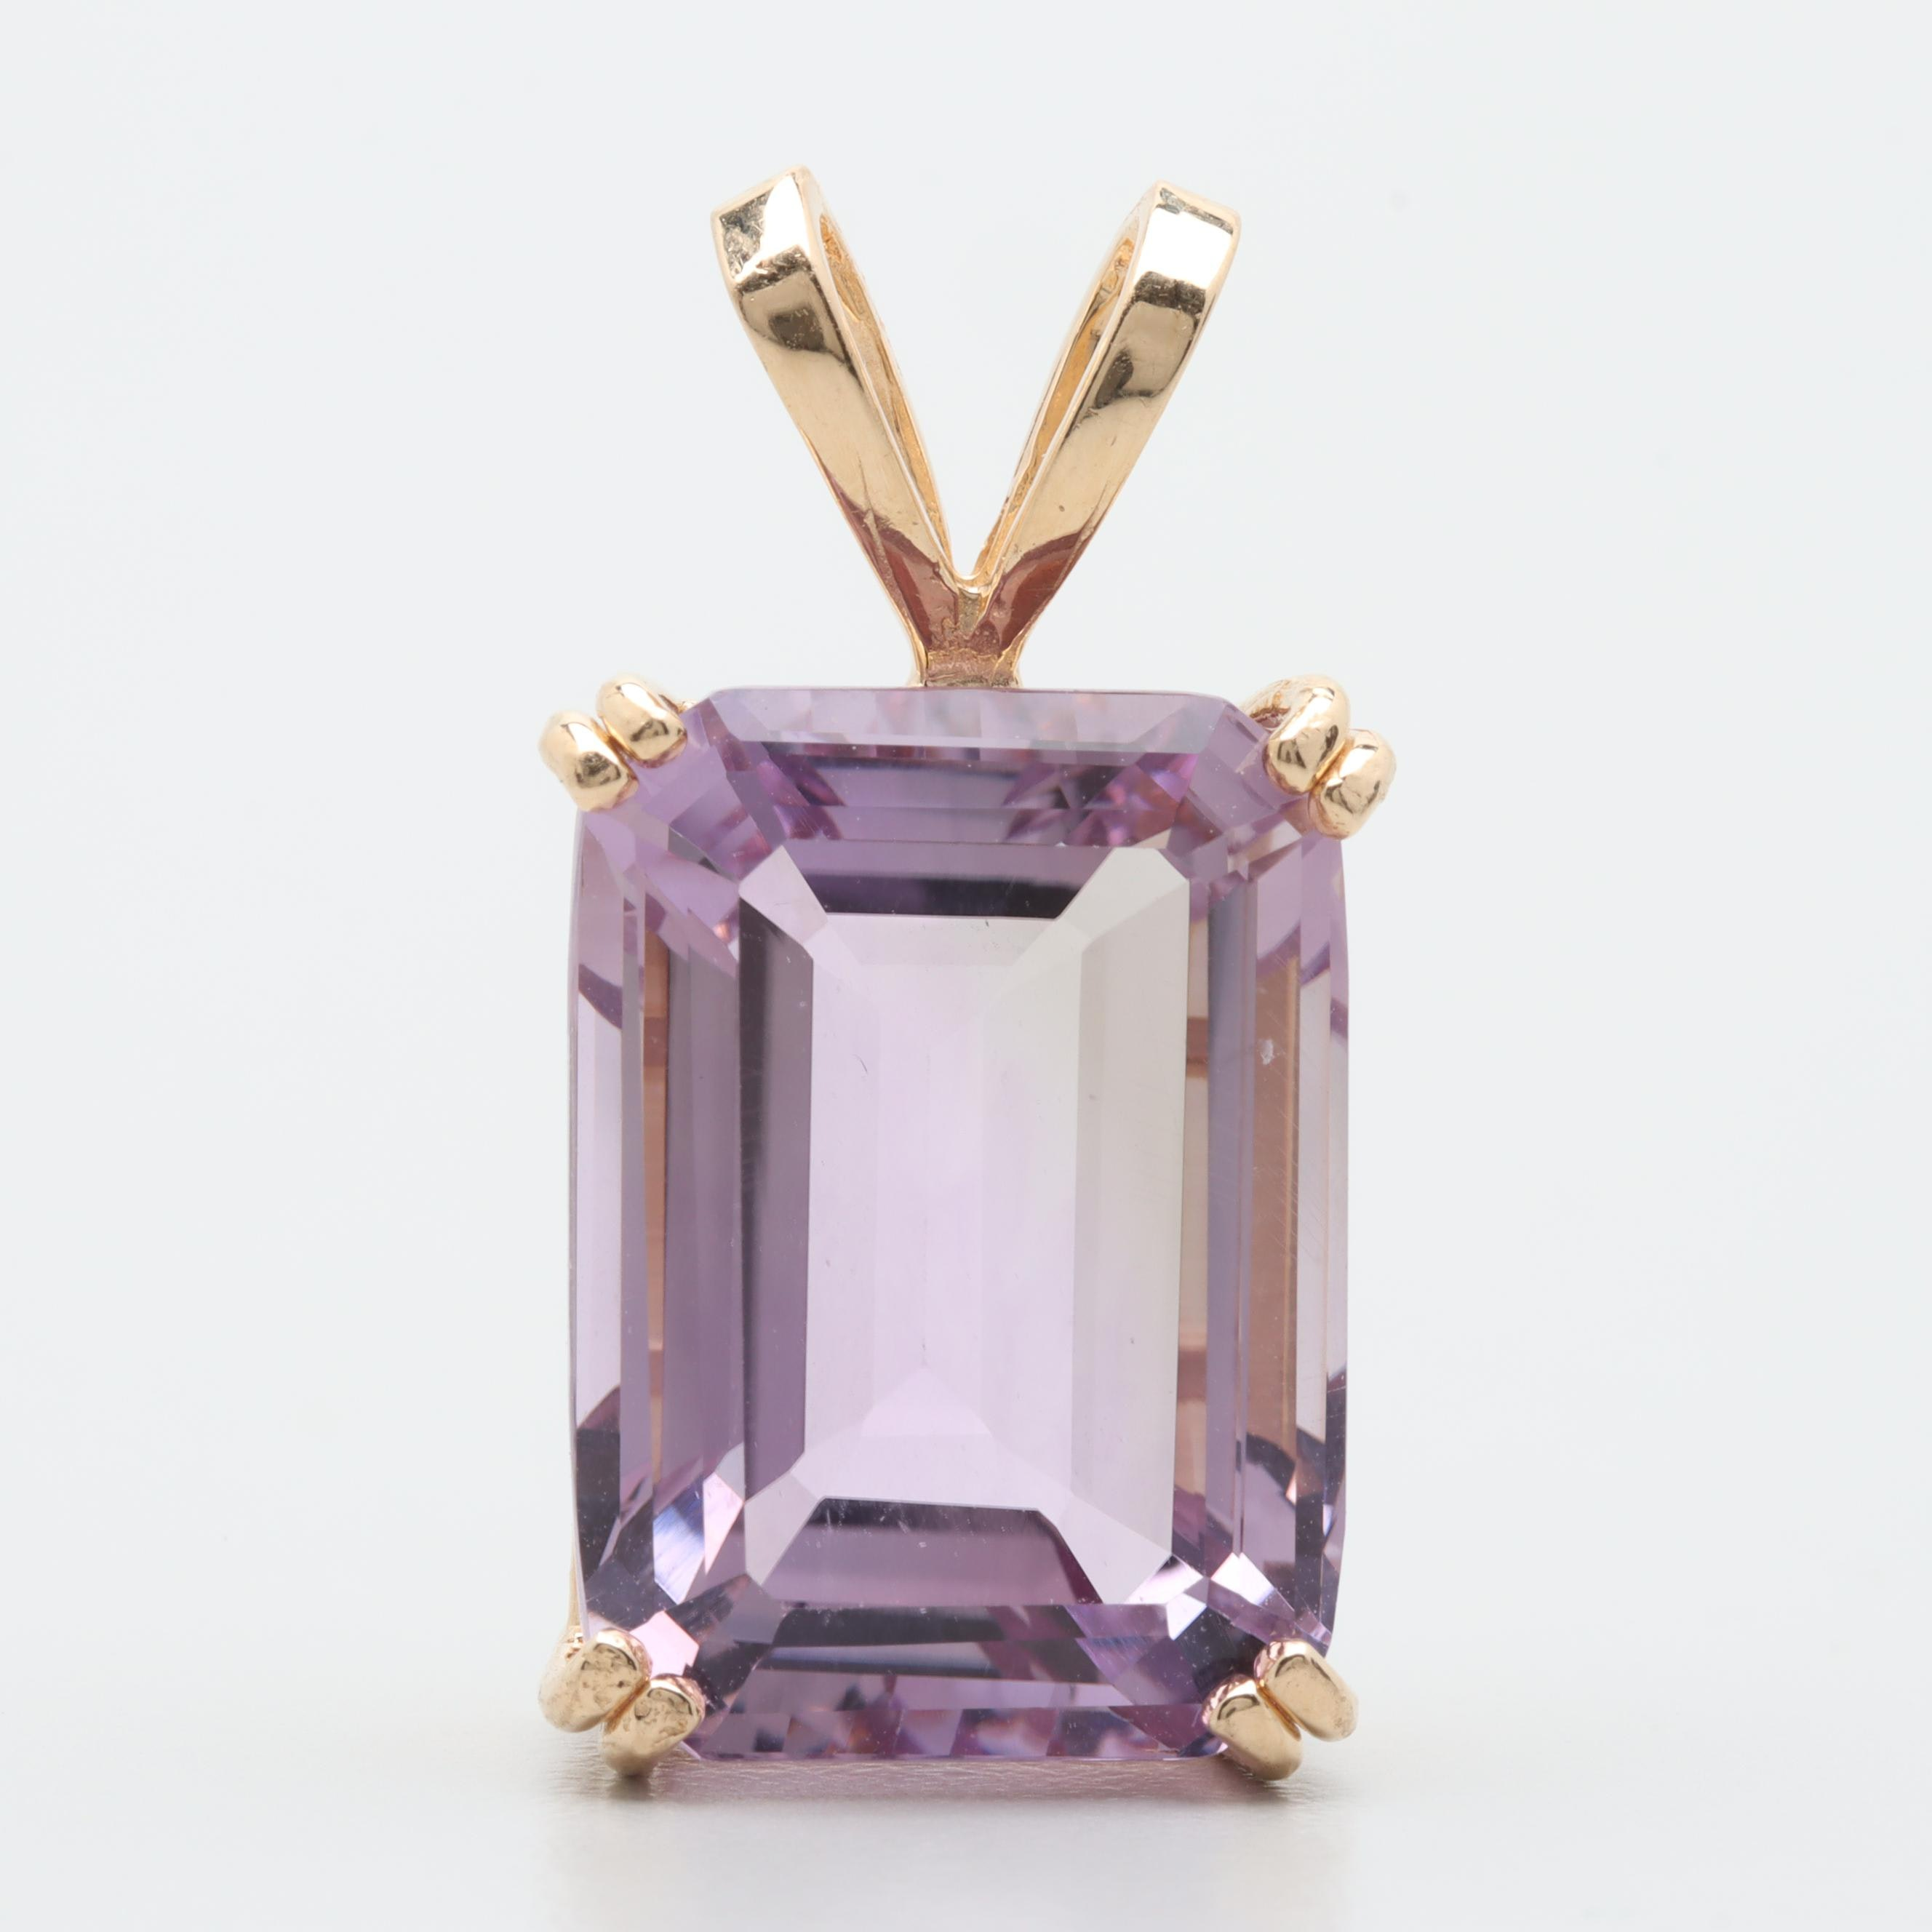 14K Yellow Gold 15.09 CT Amethyst Pendant